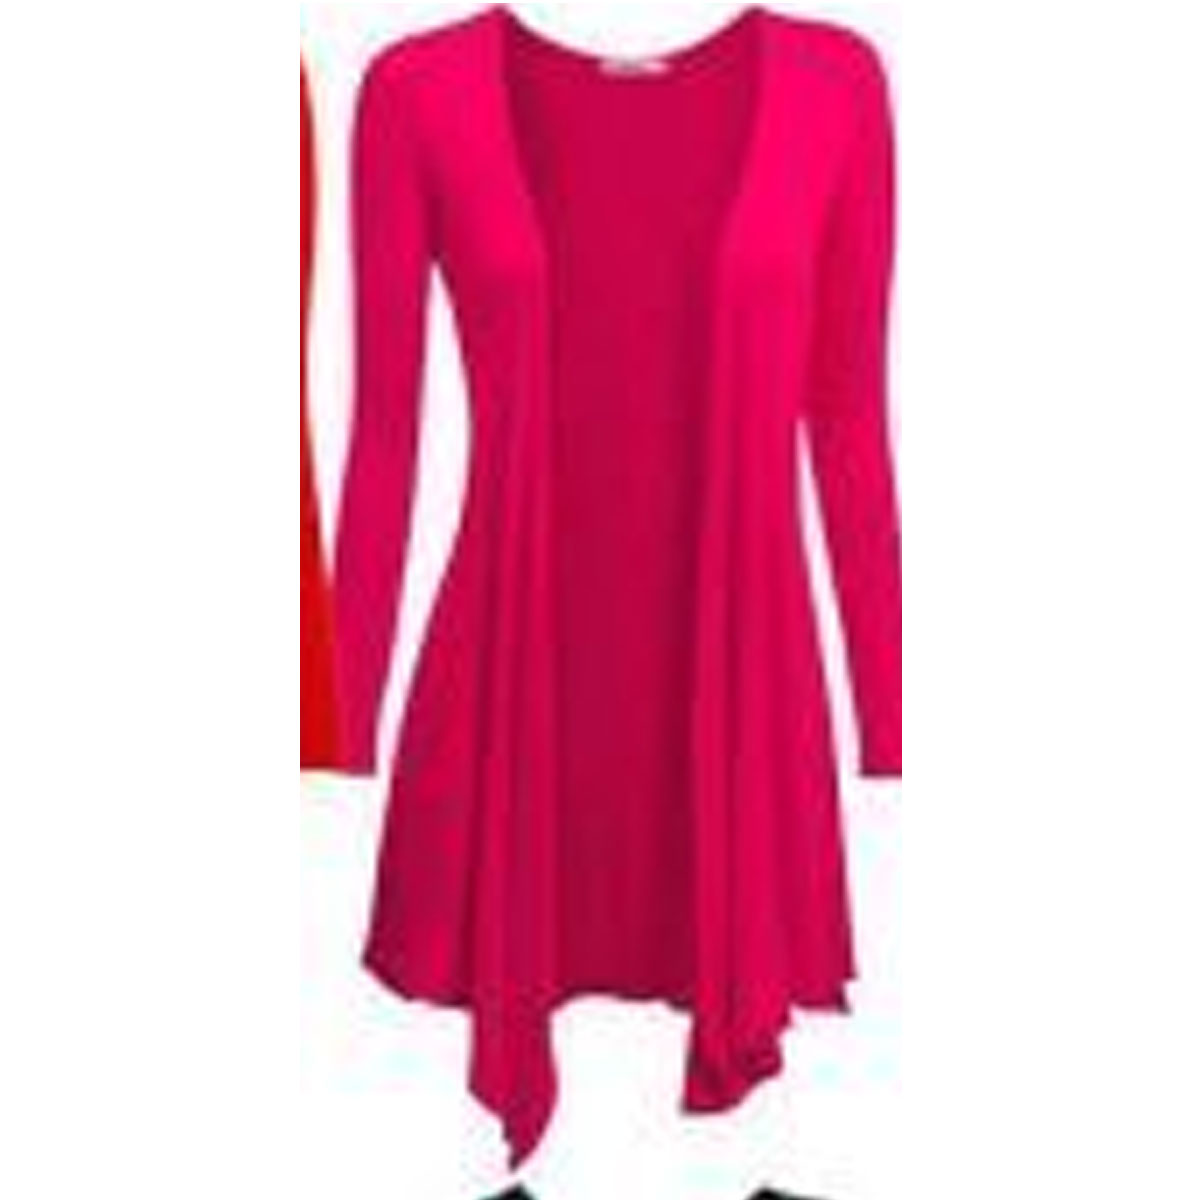 Pack of 5 Women's Jersey Cotton Shrug (Viscose Fabric) Gallery Image 2